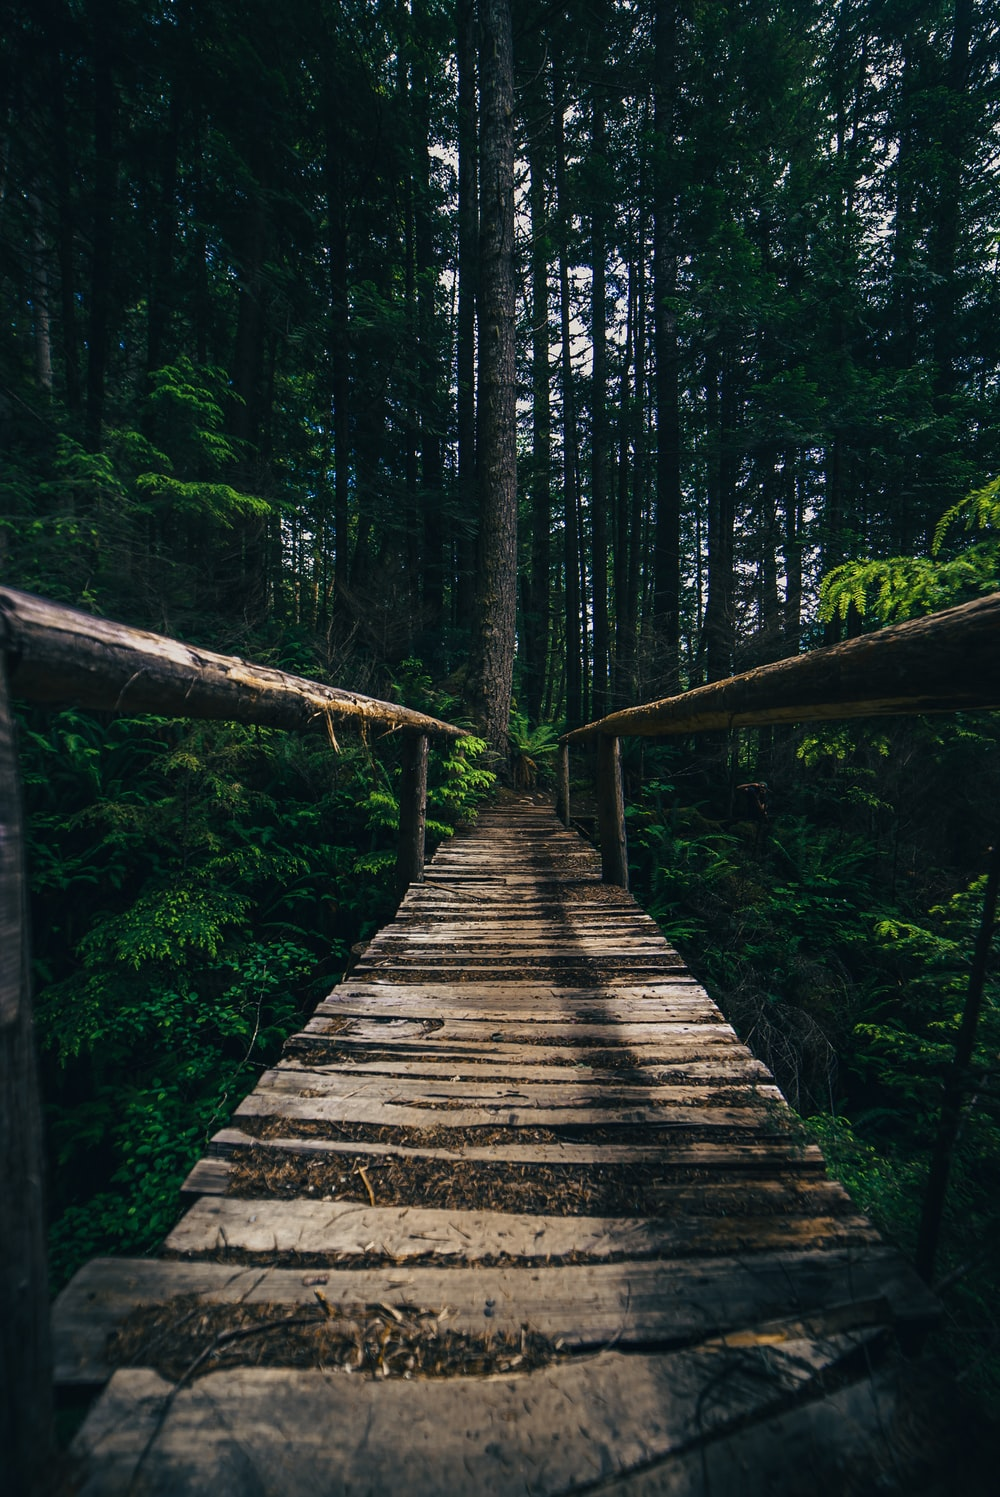 brown wooden bridge in the forest